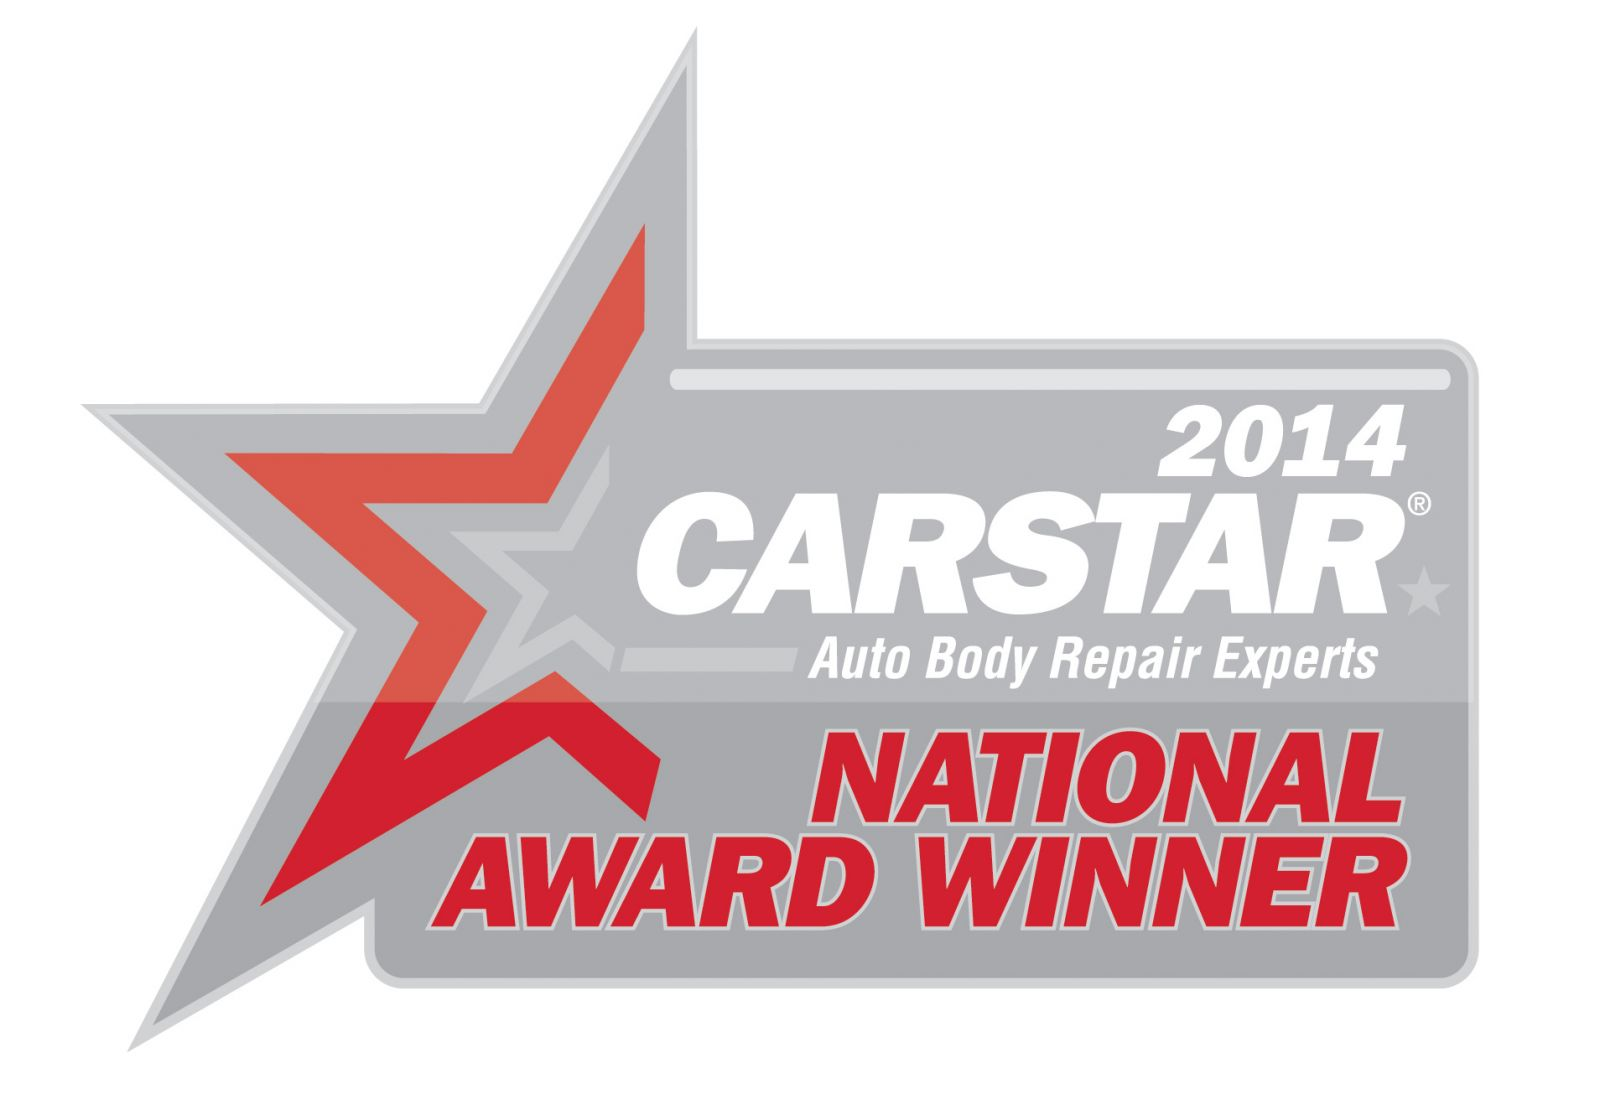 CARSTAR Scola's: 2014 National Award Winner